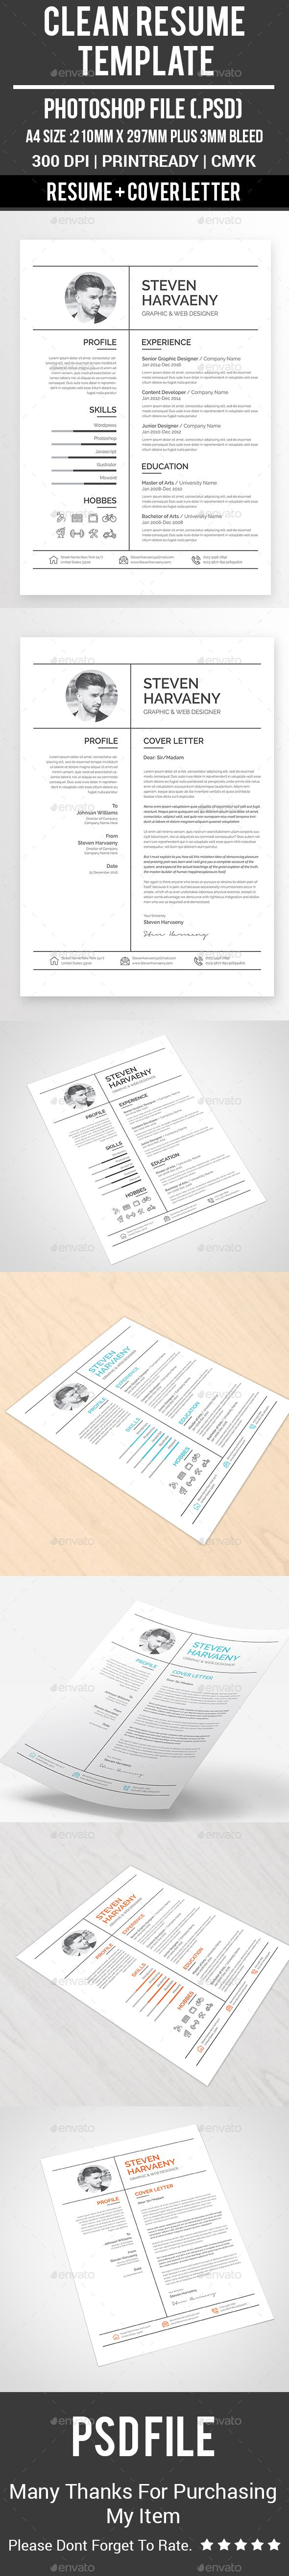 Clean Resume Template by Buntichauhan123 Clean Resume Template Specifications: A4 Resume (210x297 plus 3mm bleeds total 216x303) 300 dpi, CMYK photos areNOTincluded. All t